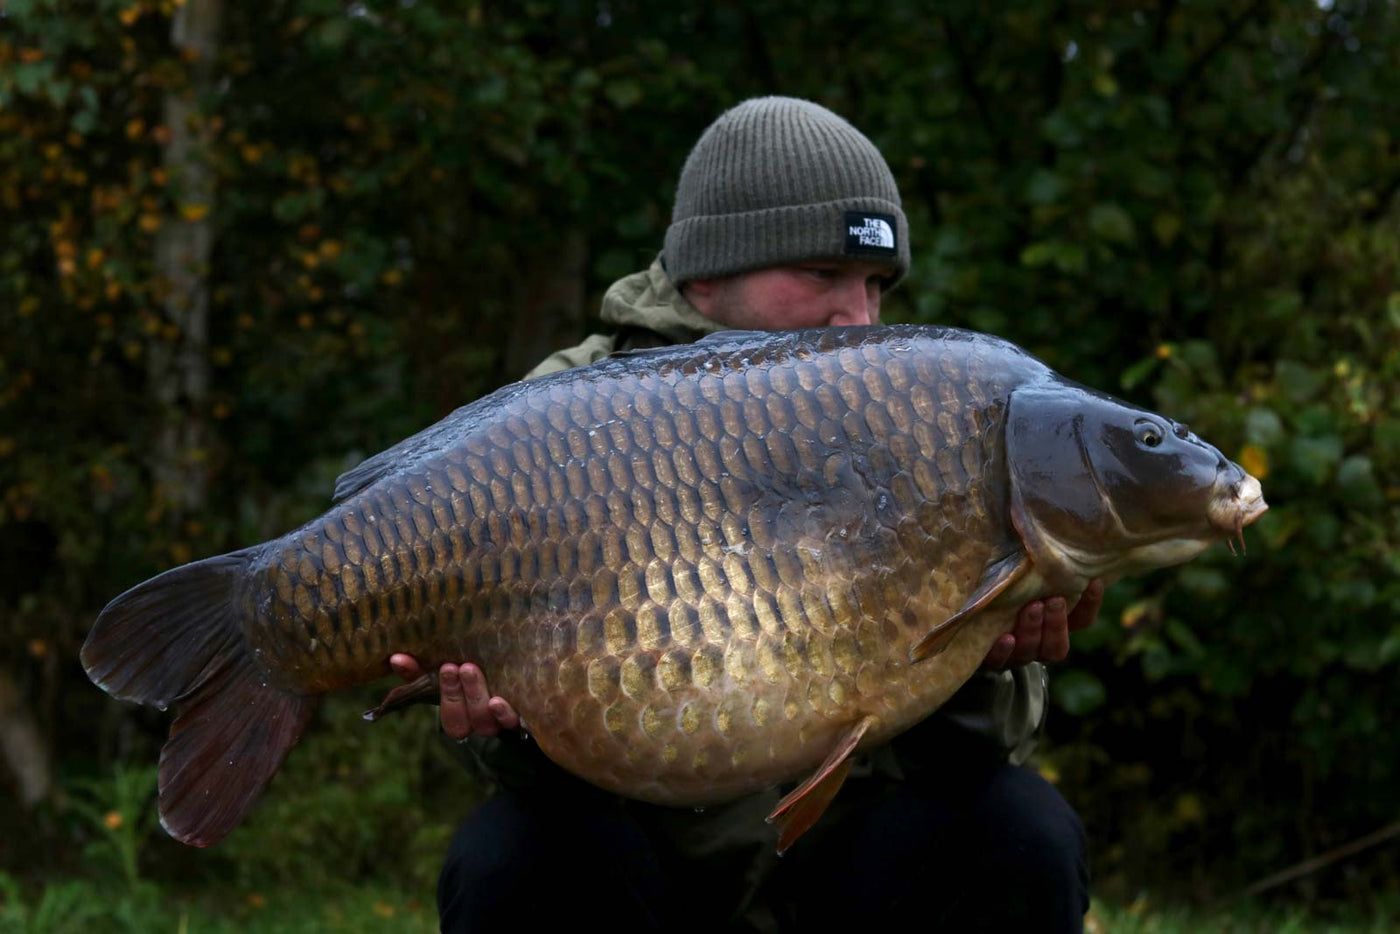 U.K 48.2 Common for Liam Gingell